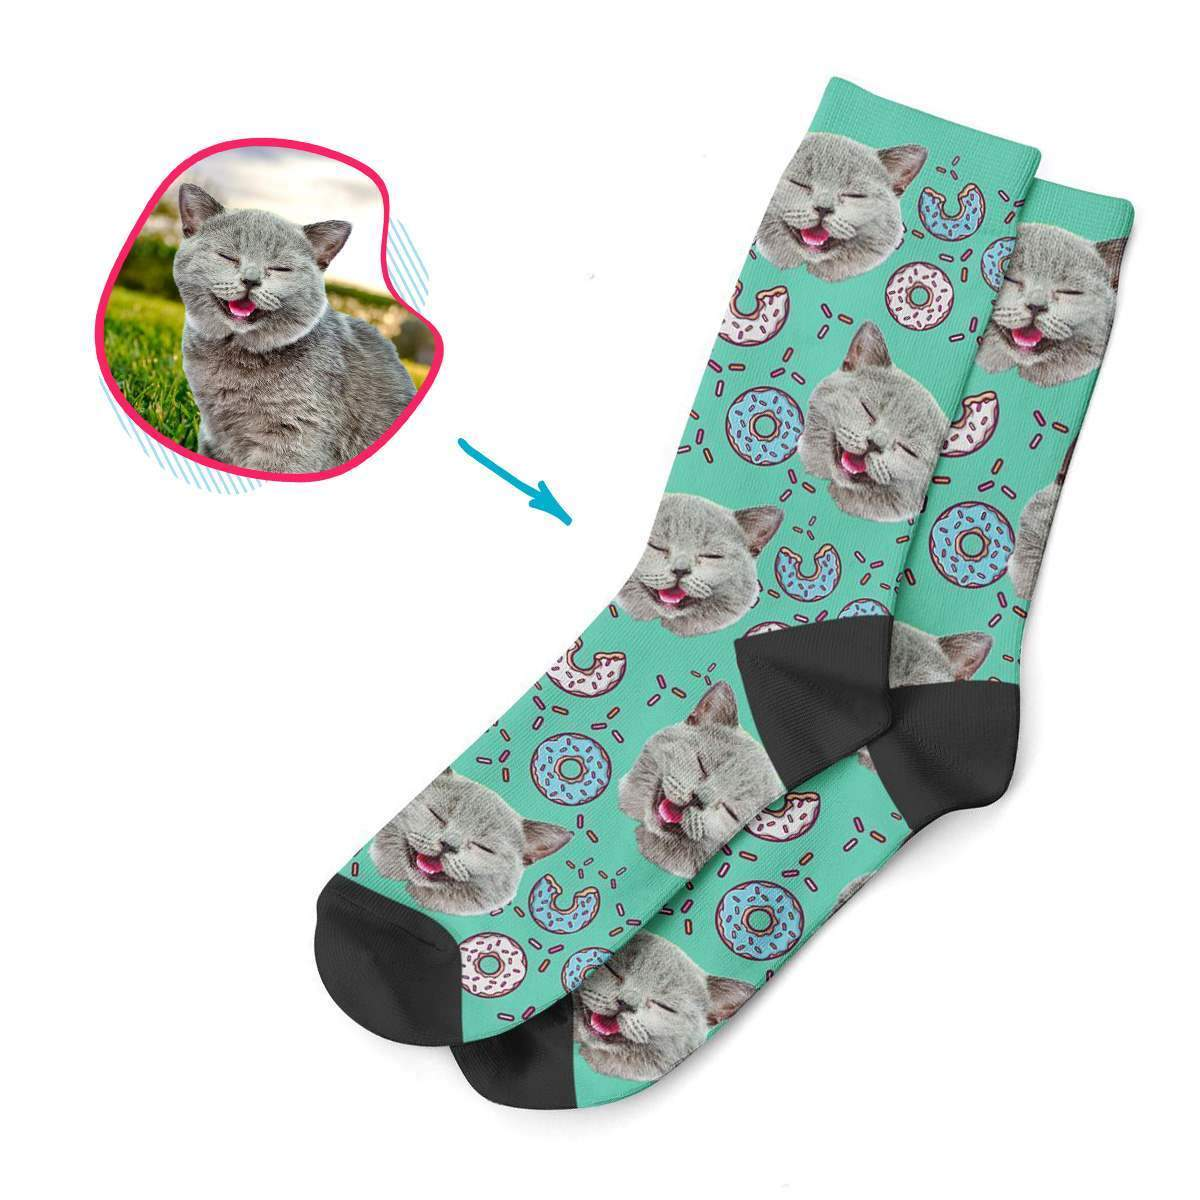 mint Donuts socks personalized with photo of face printed on them